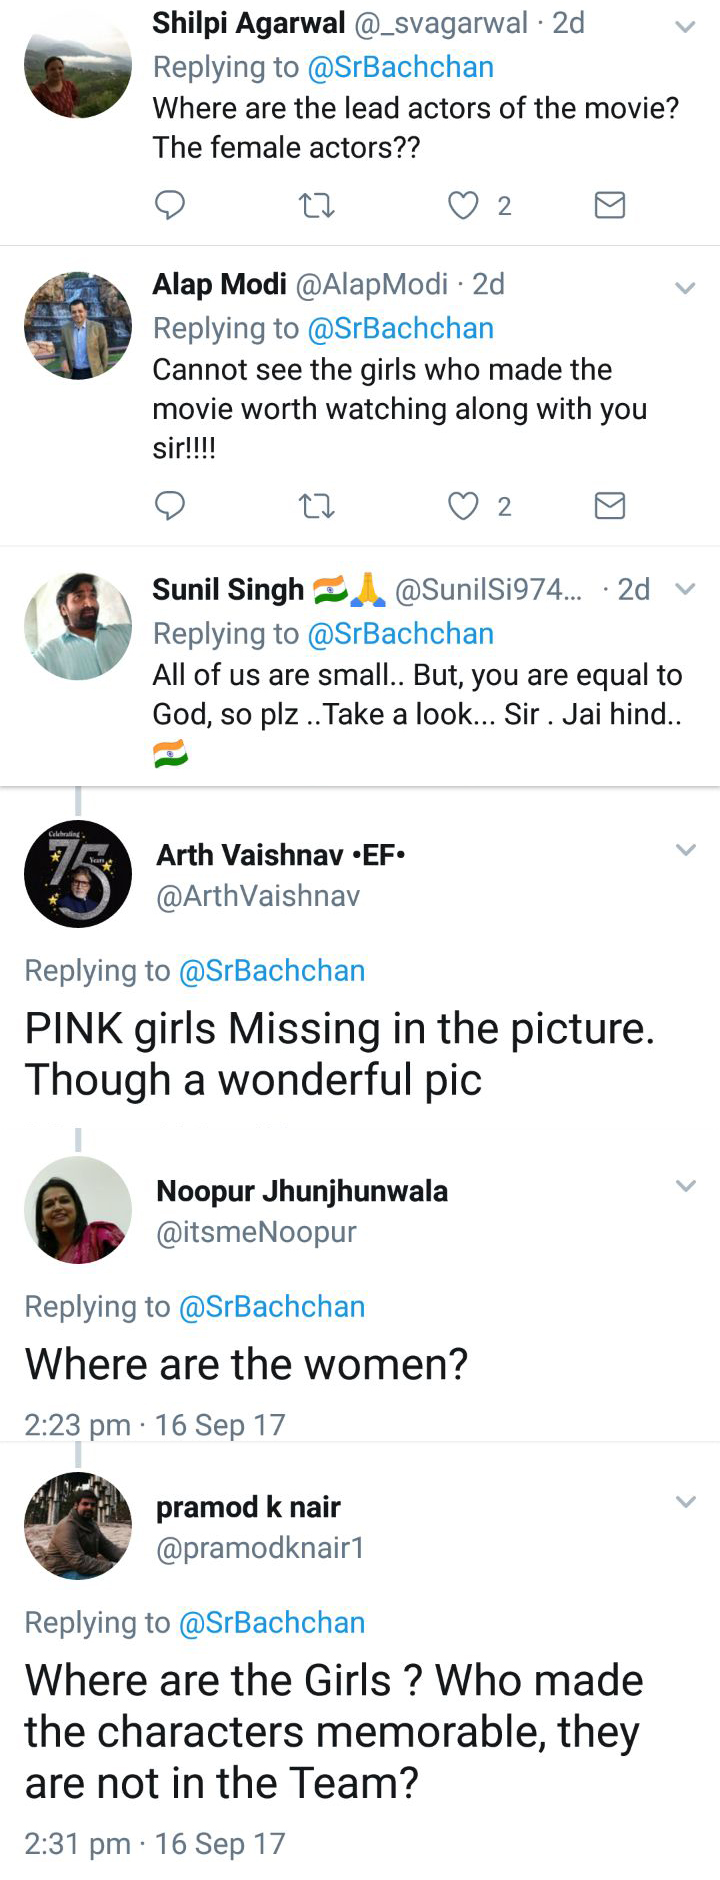 trollers trollering amitabh bachchan for his latest twitter post